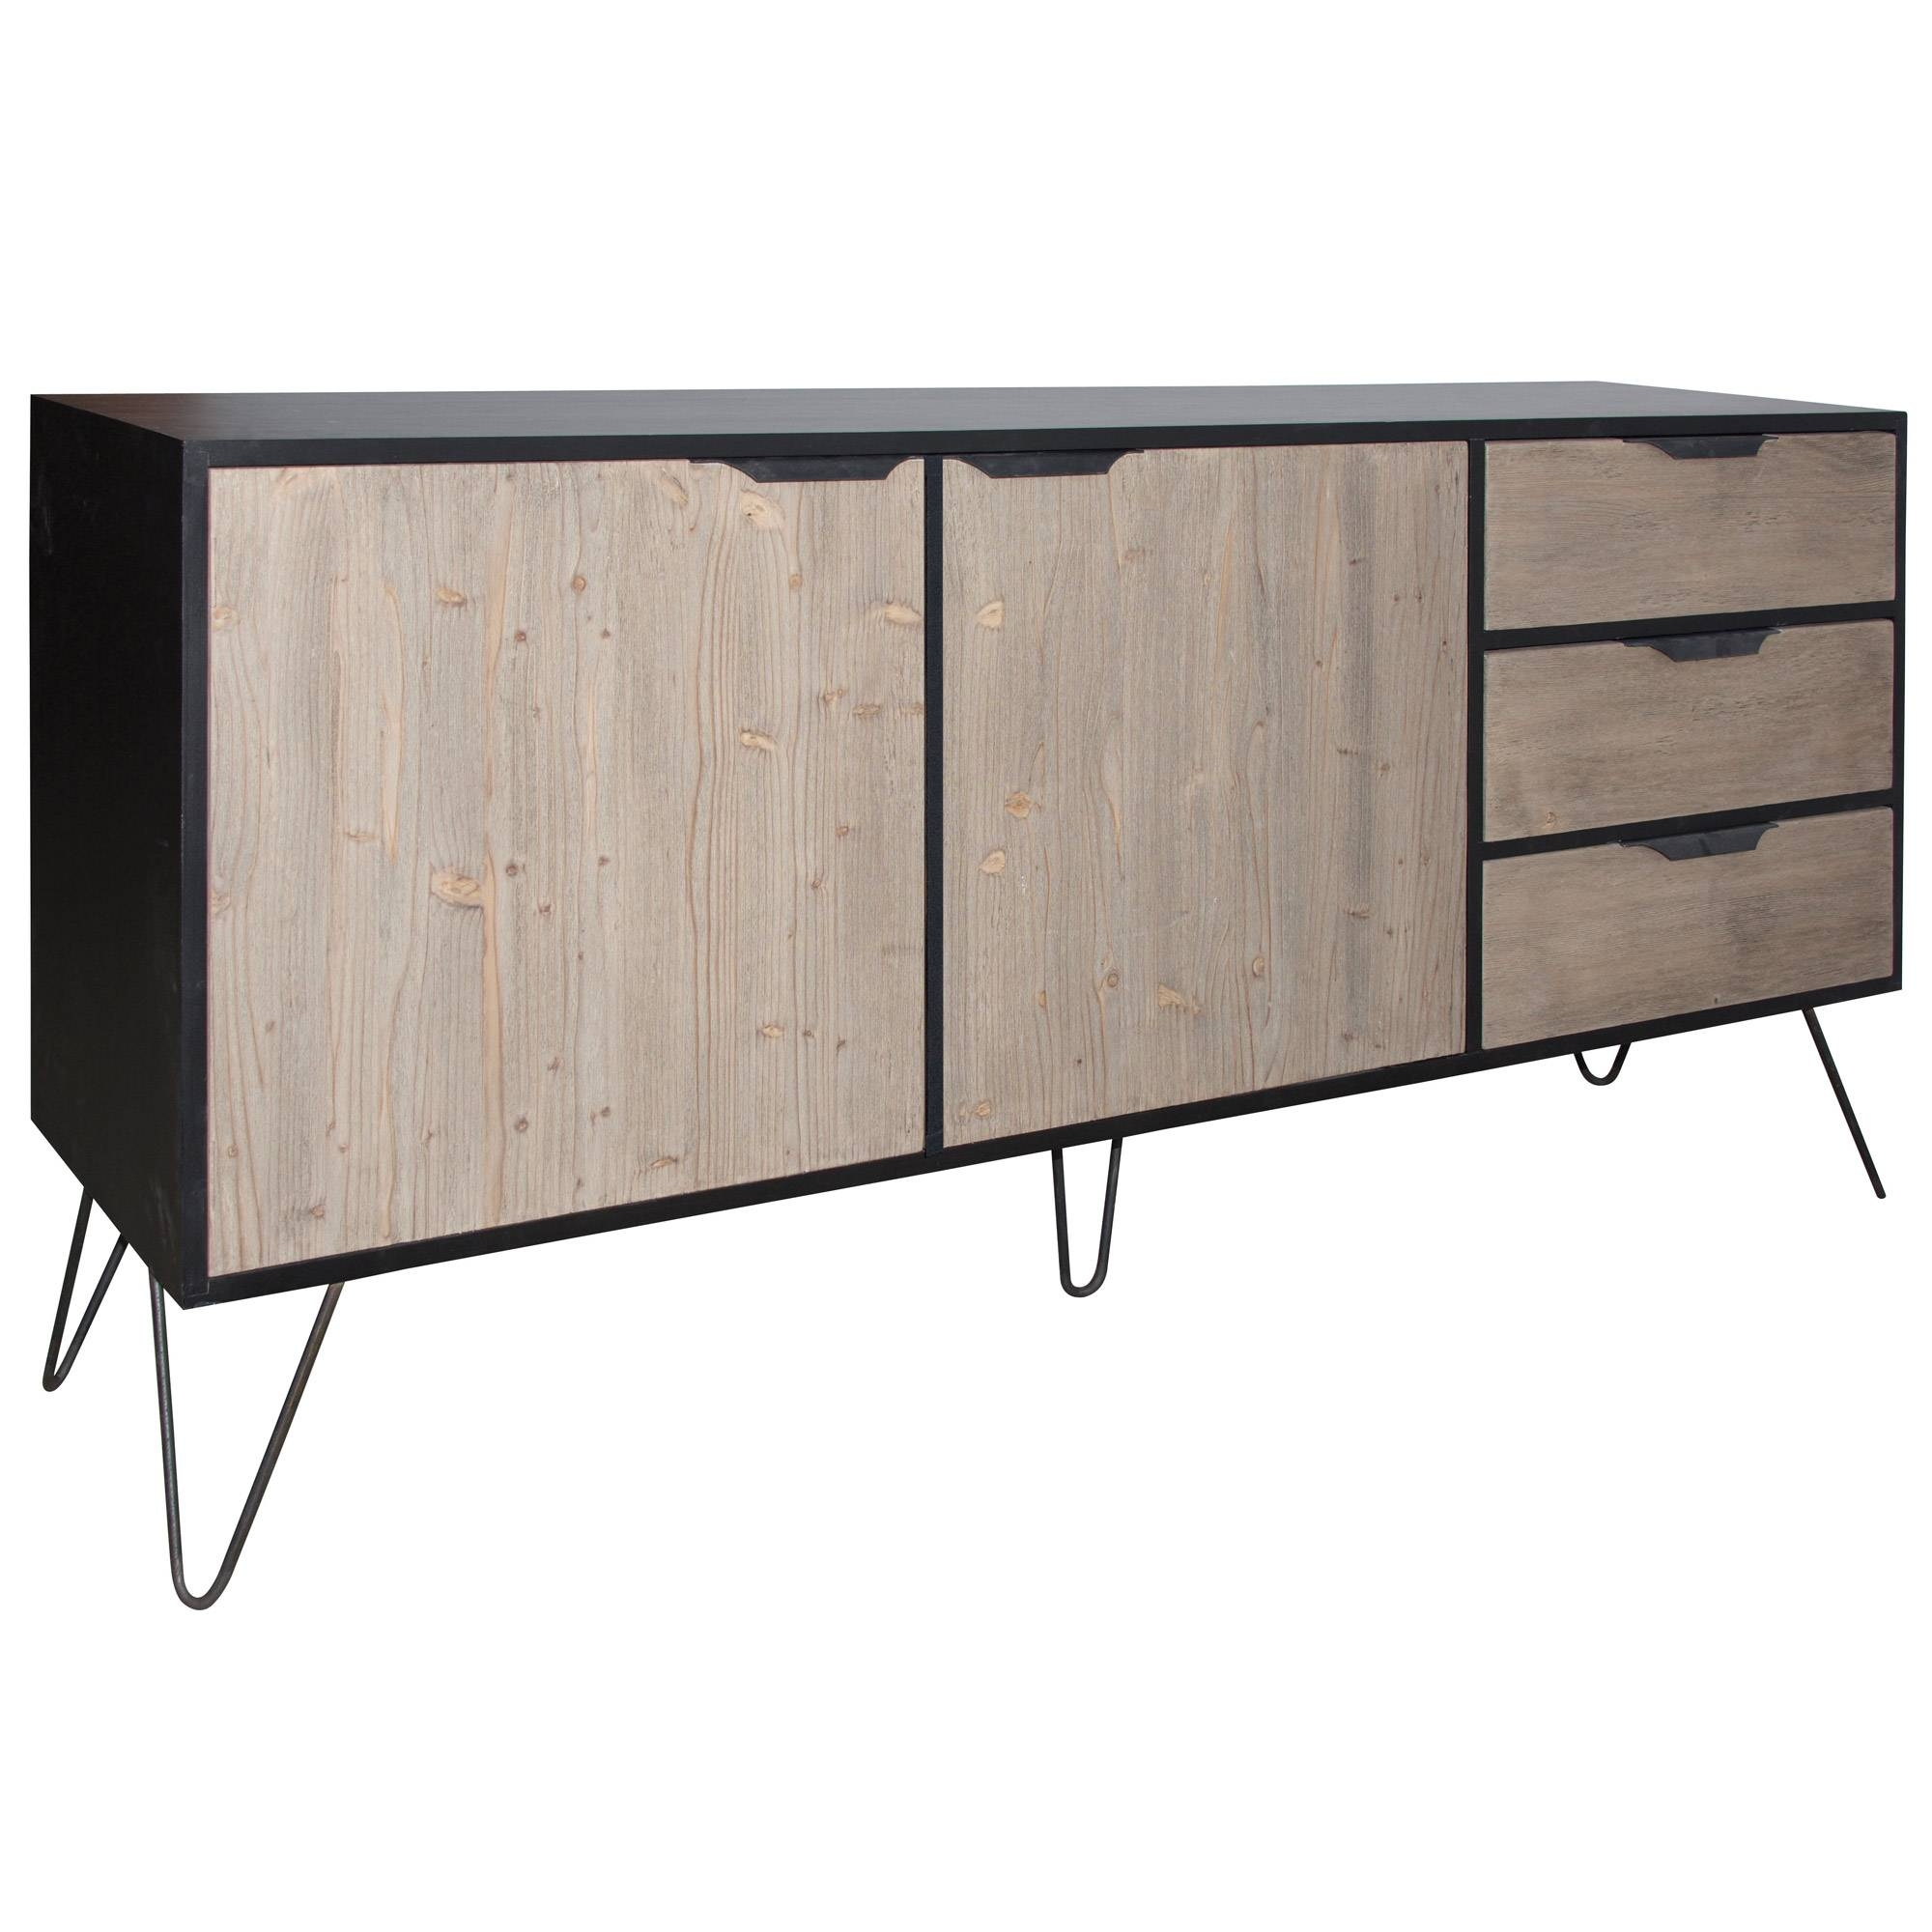 French Wide Sideboard With Metal Legs | No 44 Furniture, Cobham pertaining to Metal Sideboard Furniture (Image 13 of 30)